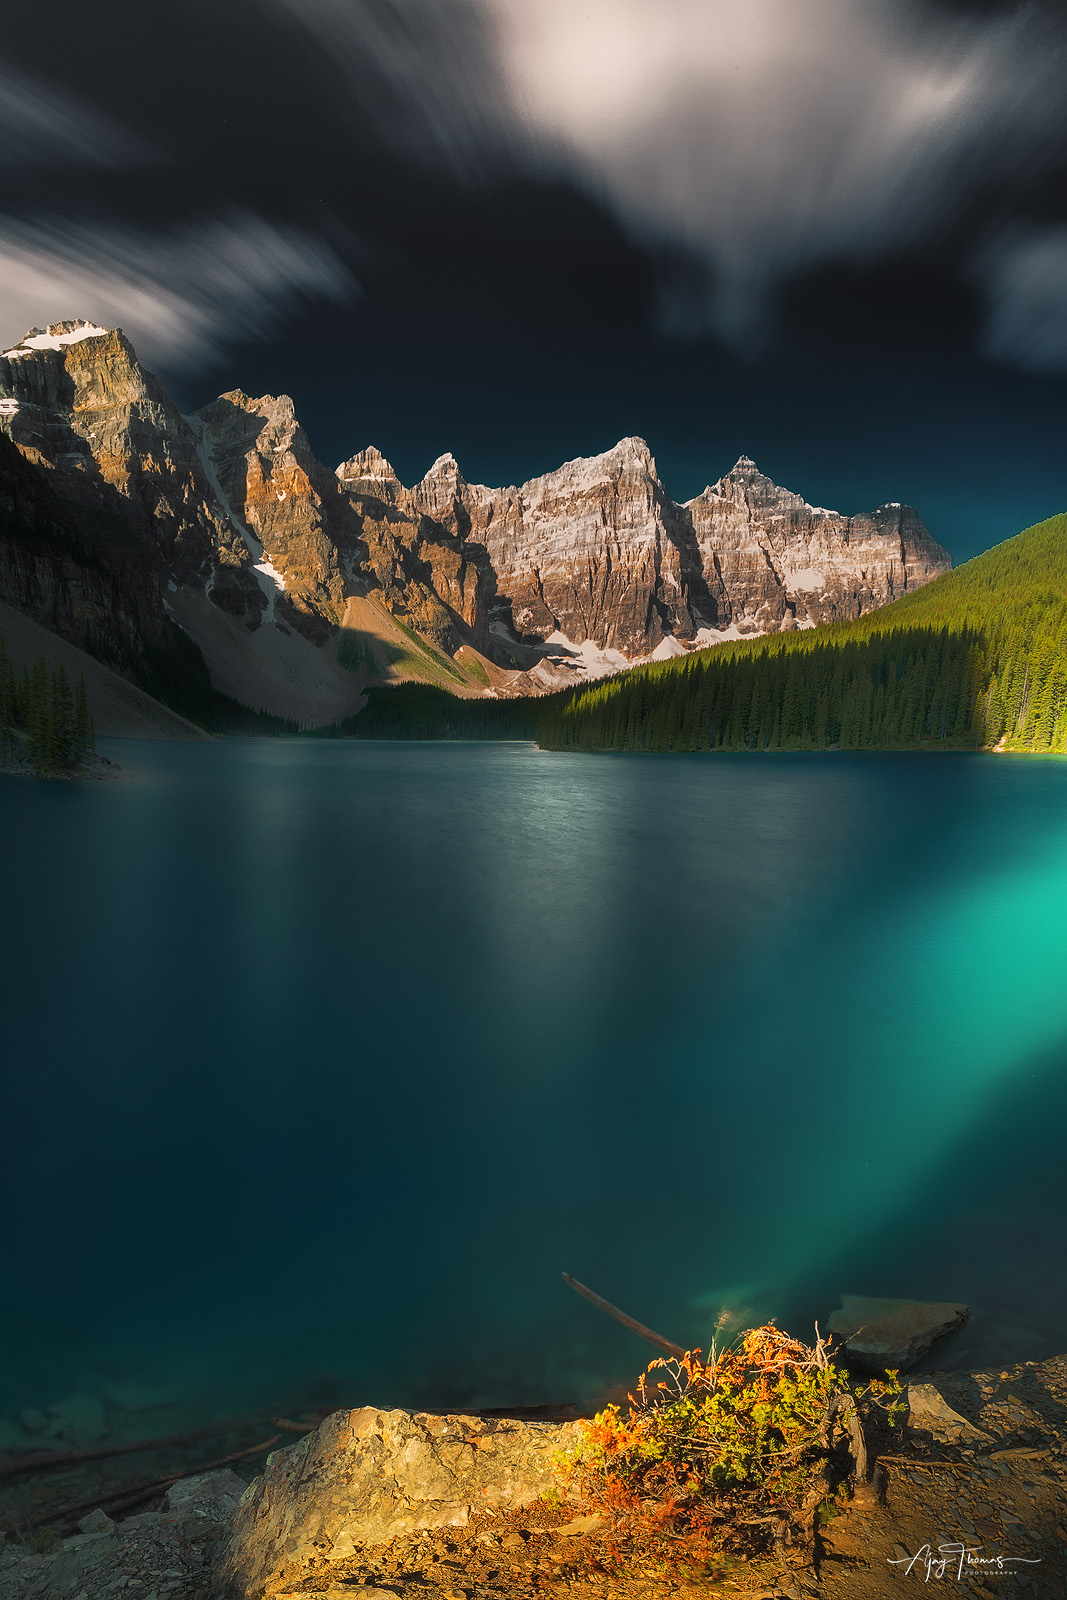 God forgive me for I trespass into your area. The ethereal beauty of the Moraine Lake could turn anyone into a poet…Moraine...